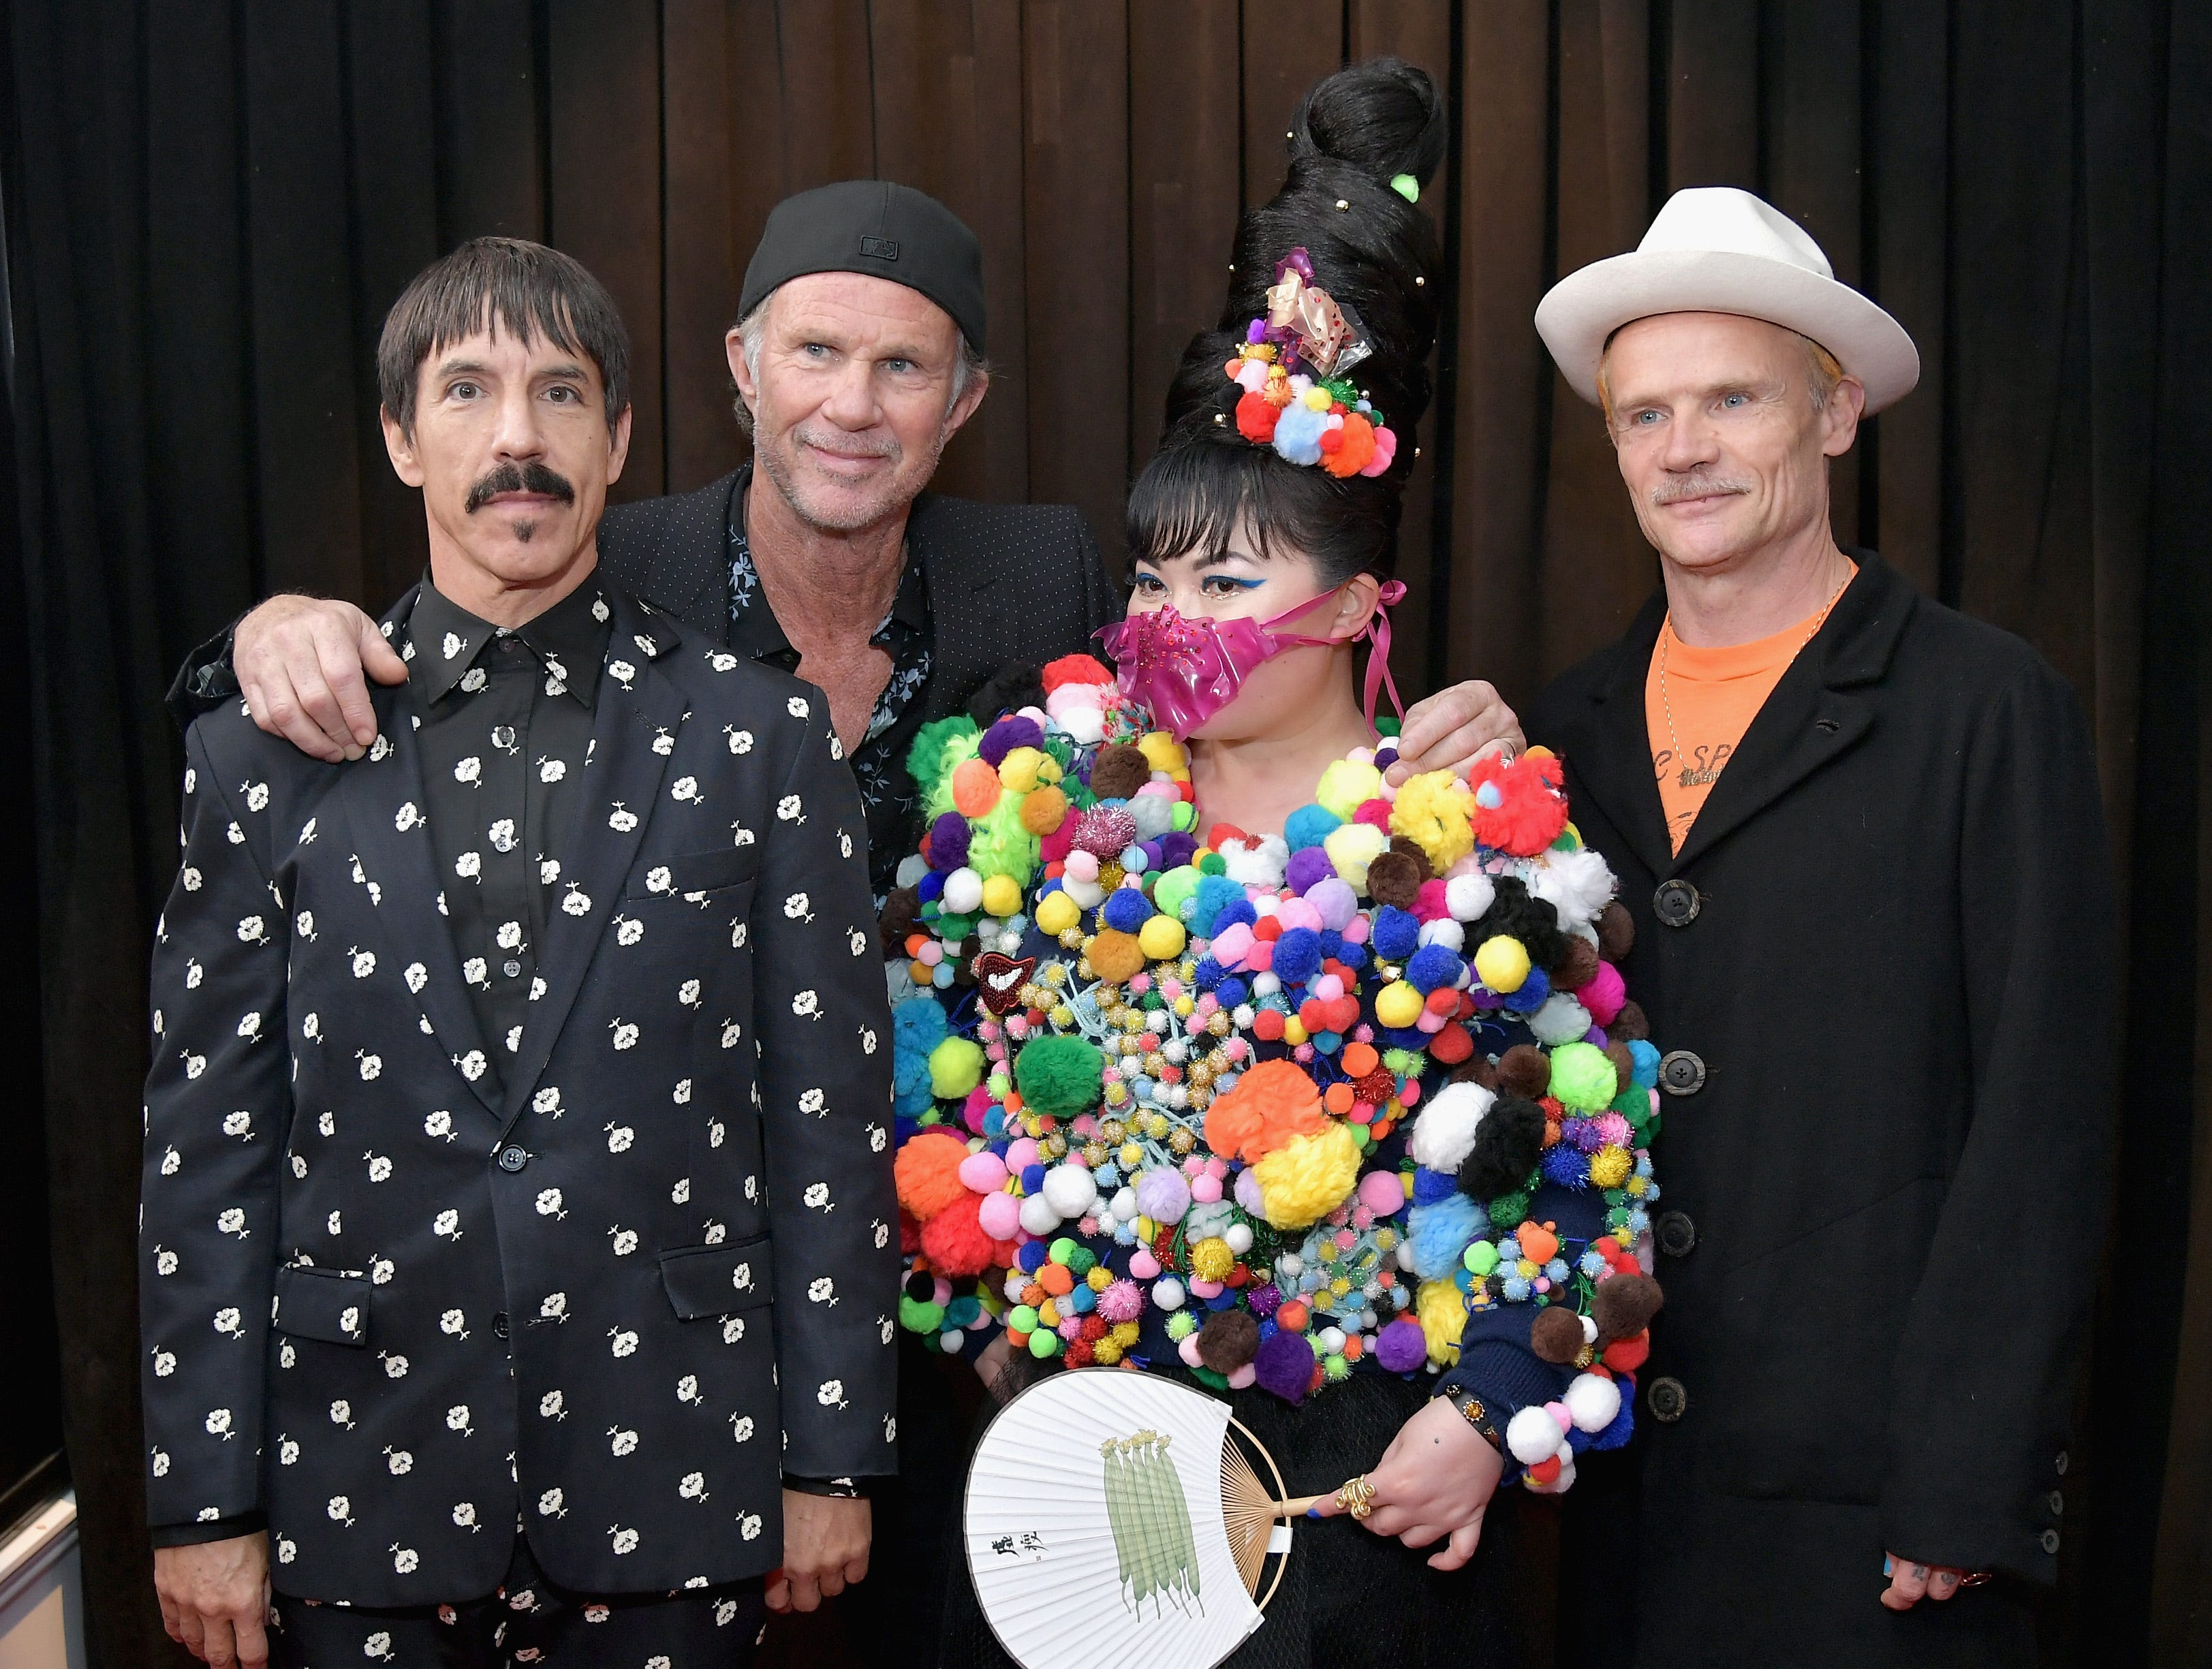 Anthony Kiedis, Chad Smith, y Flea de Red Hot Chili Peppers con Du Yen asisten a la 61ª edición de los premios GRAMMY en el Staples Center el 10 de febrero de 2019 en Los Ángeles, California.